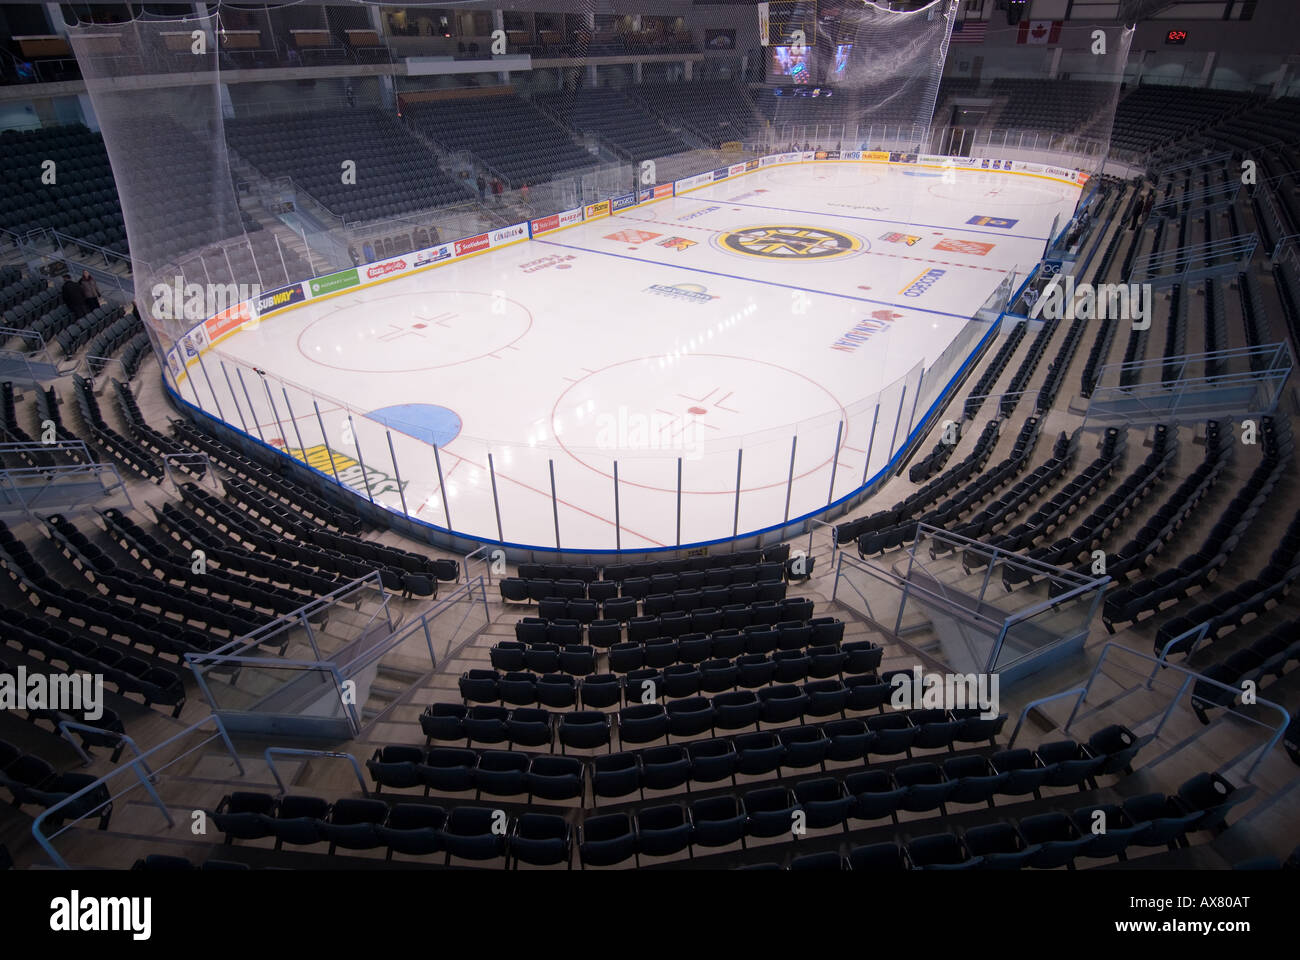 The K Rock Centre ice pad and spectator seats in Kingston Ontario Feb 25th 2008 - Stock Image